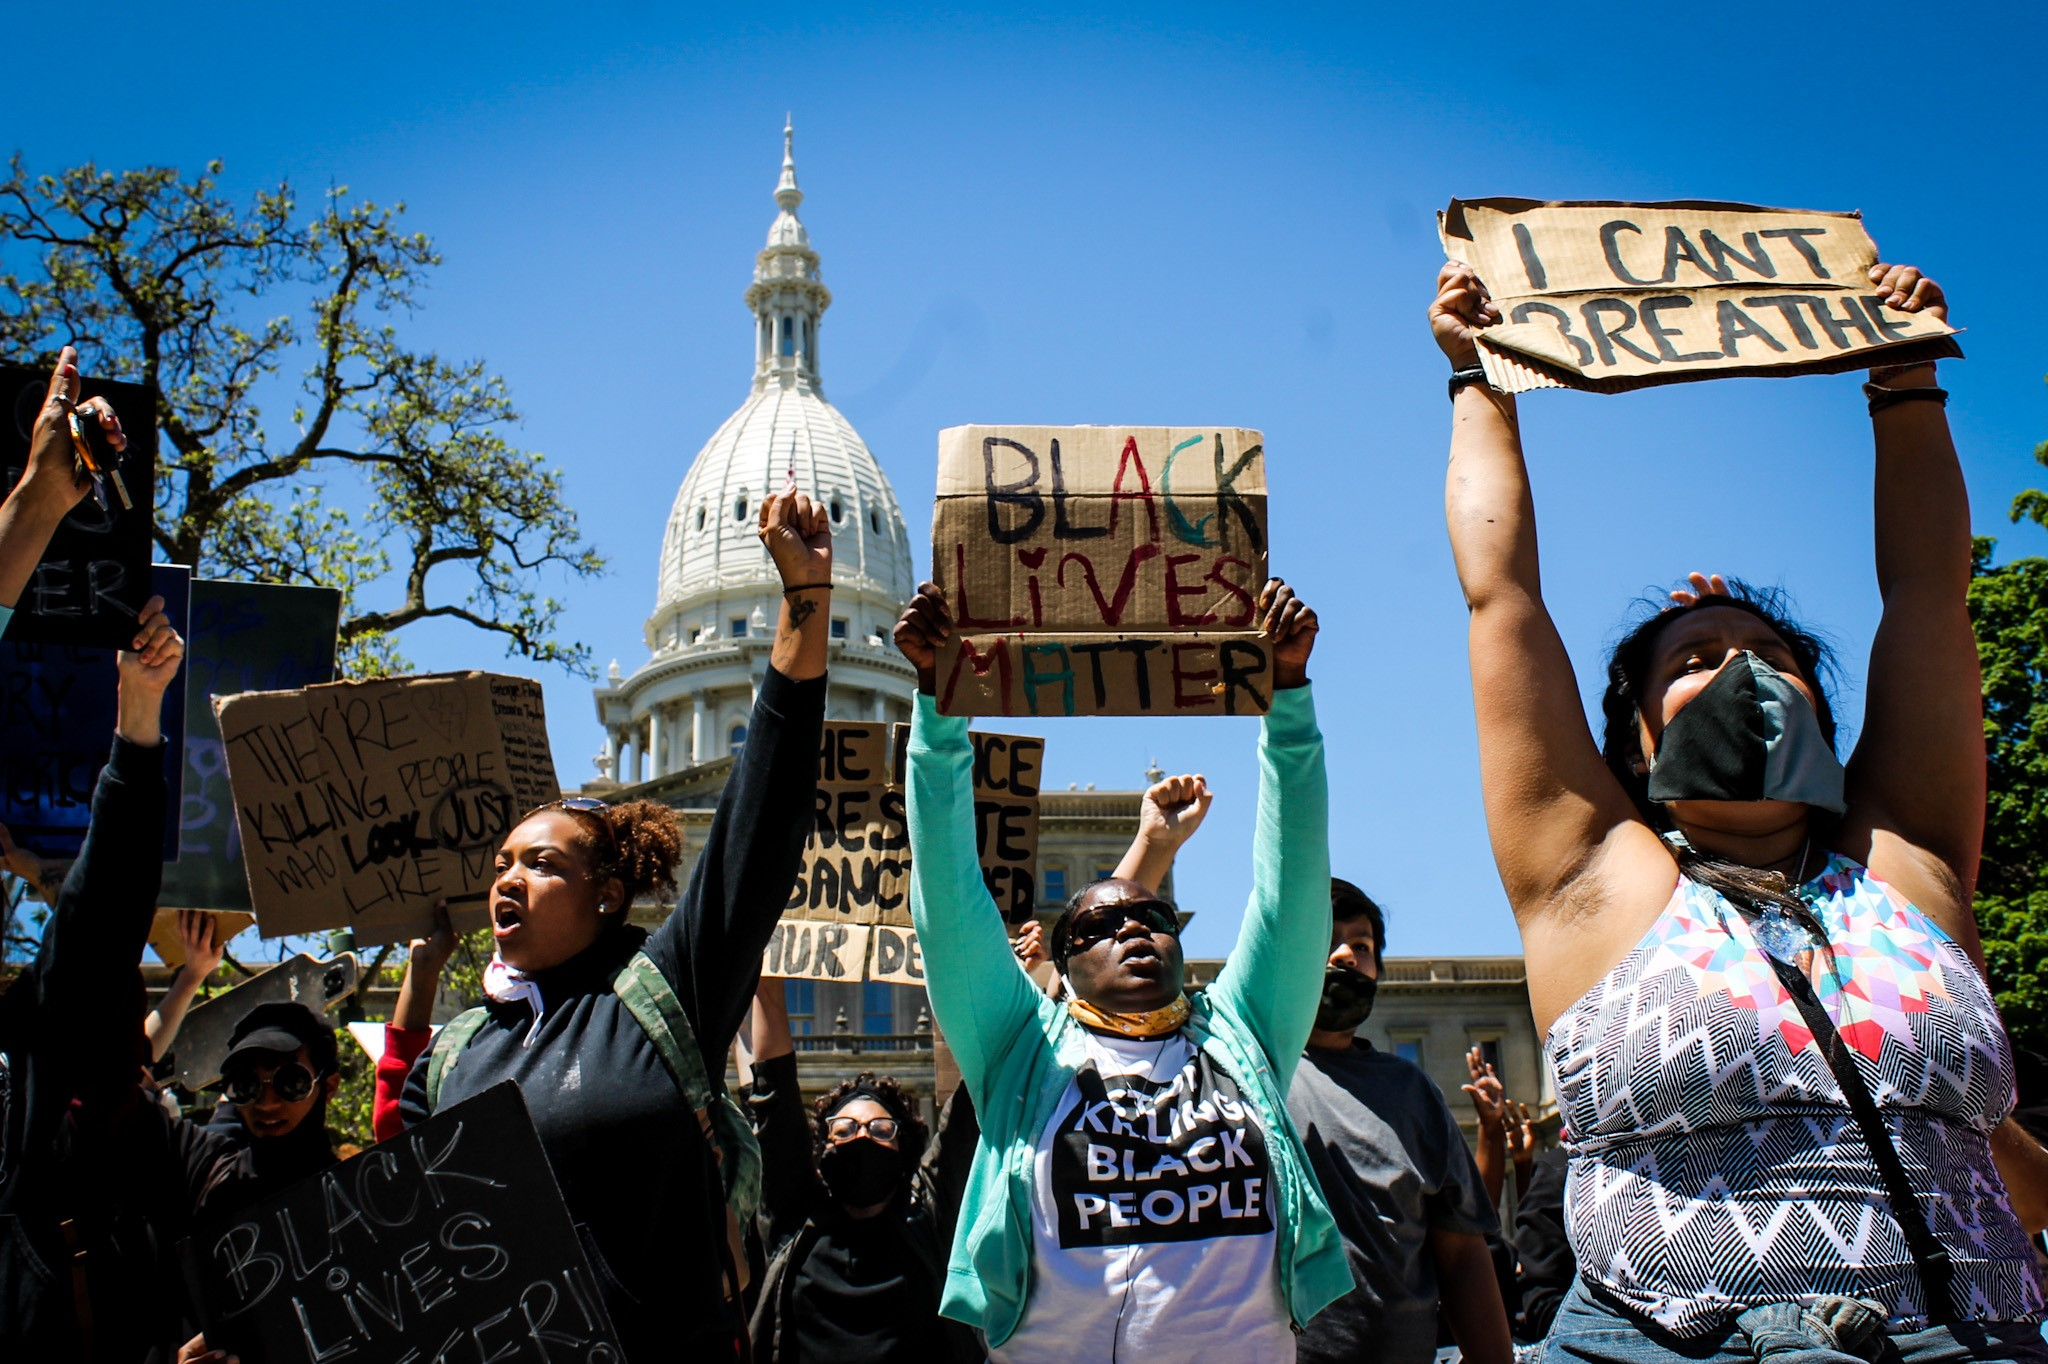 A protest in Lansing on Sunday, May 31, 2020 began peaceful, before turning violent as the night went on. (WWMT/Mikenzie Frost)